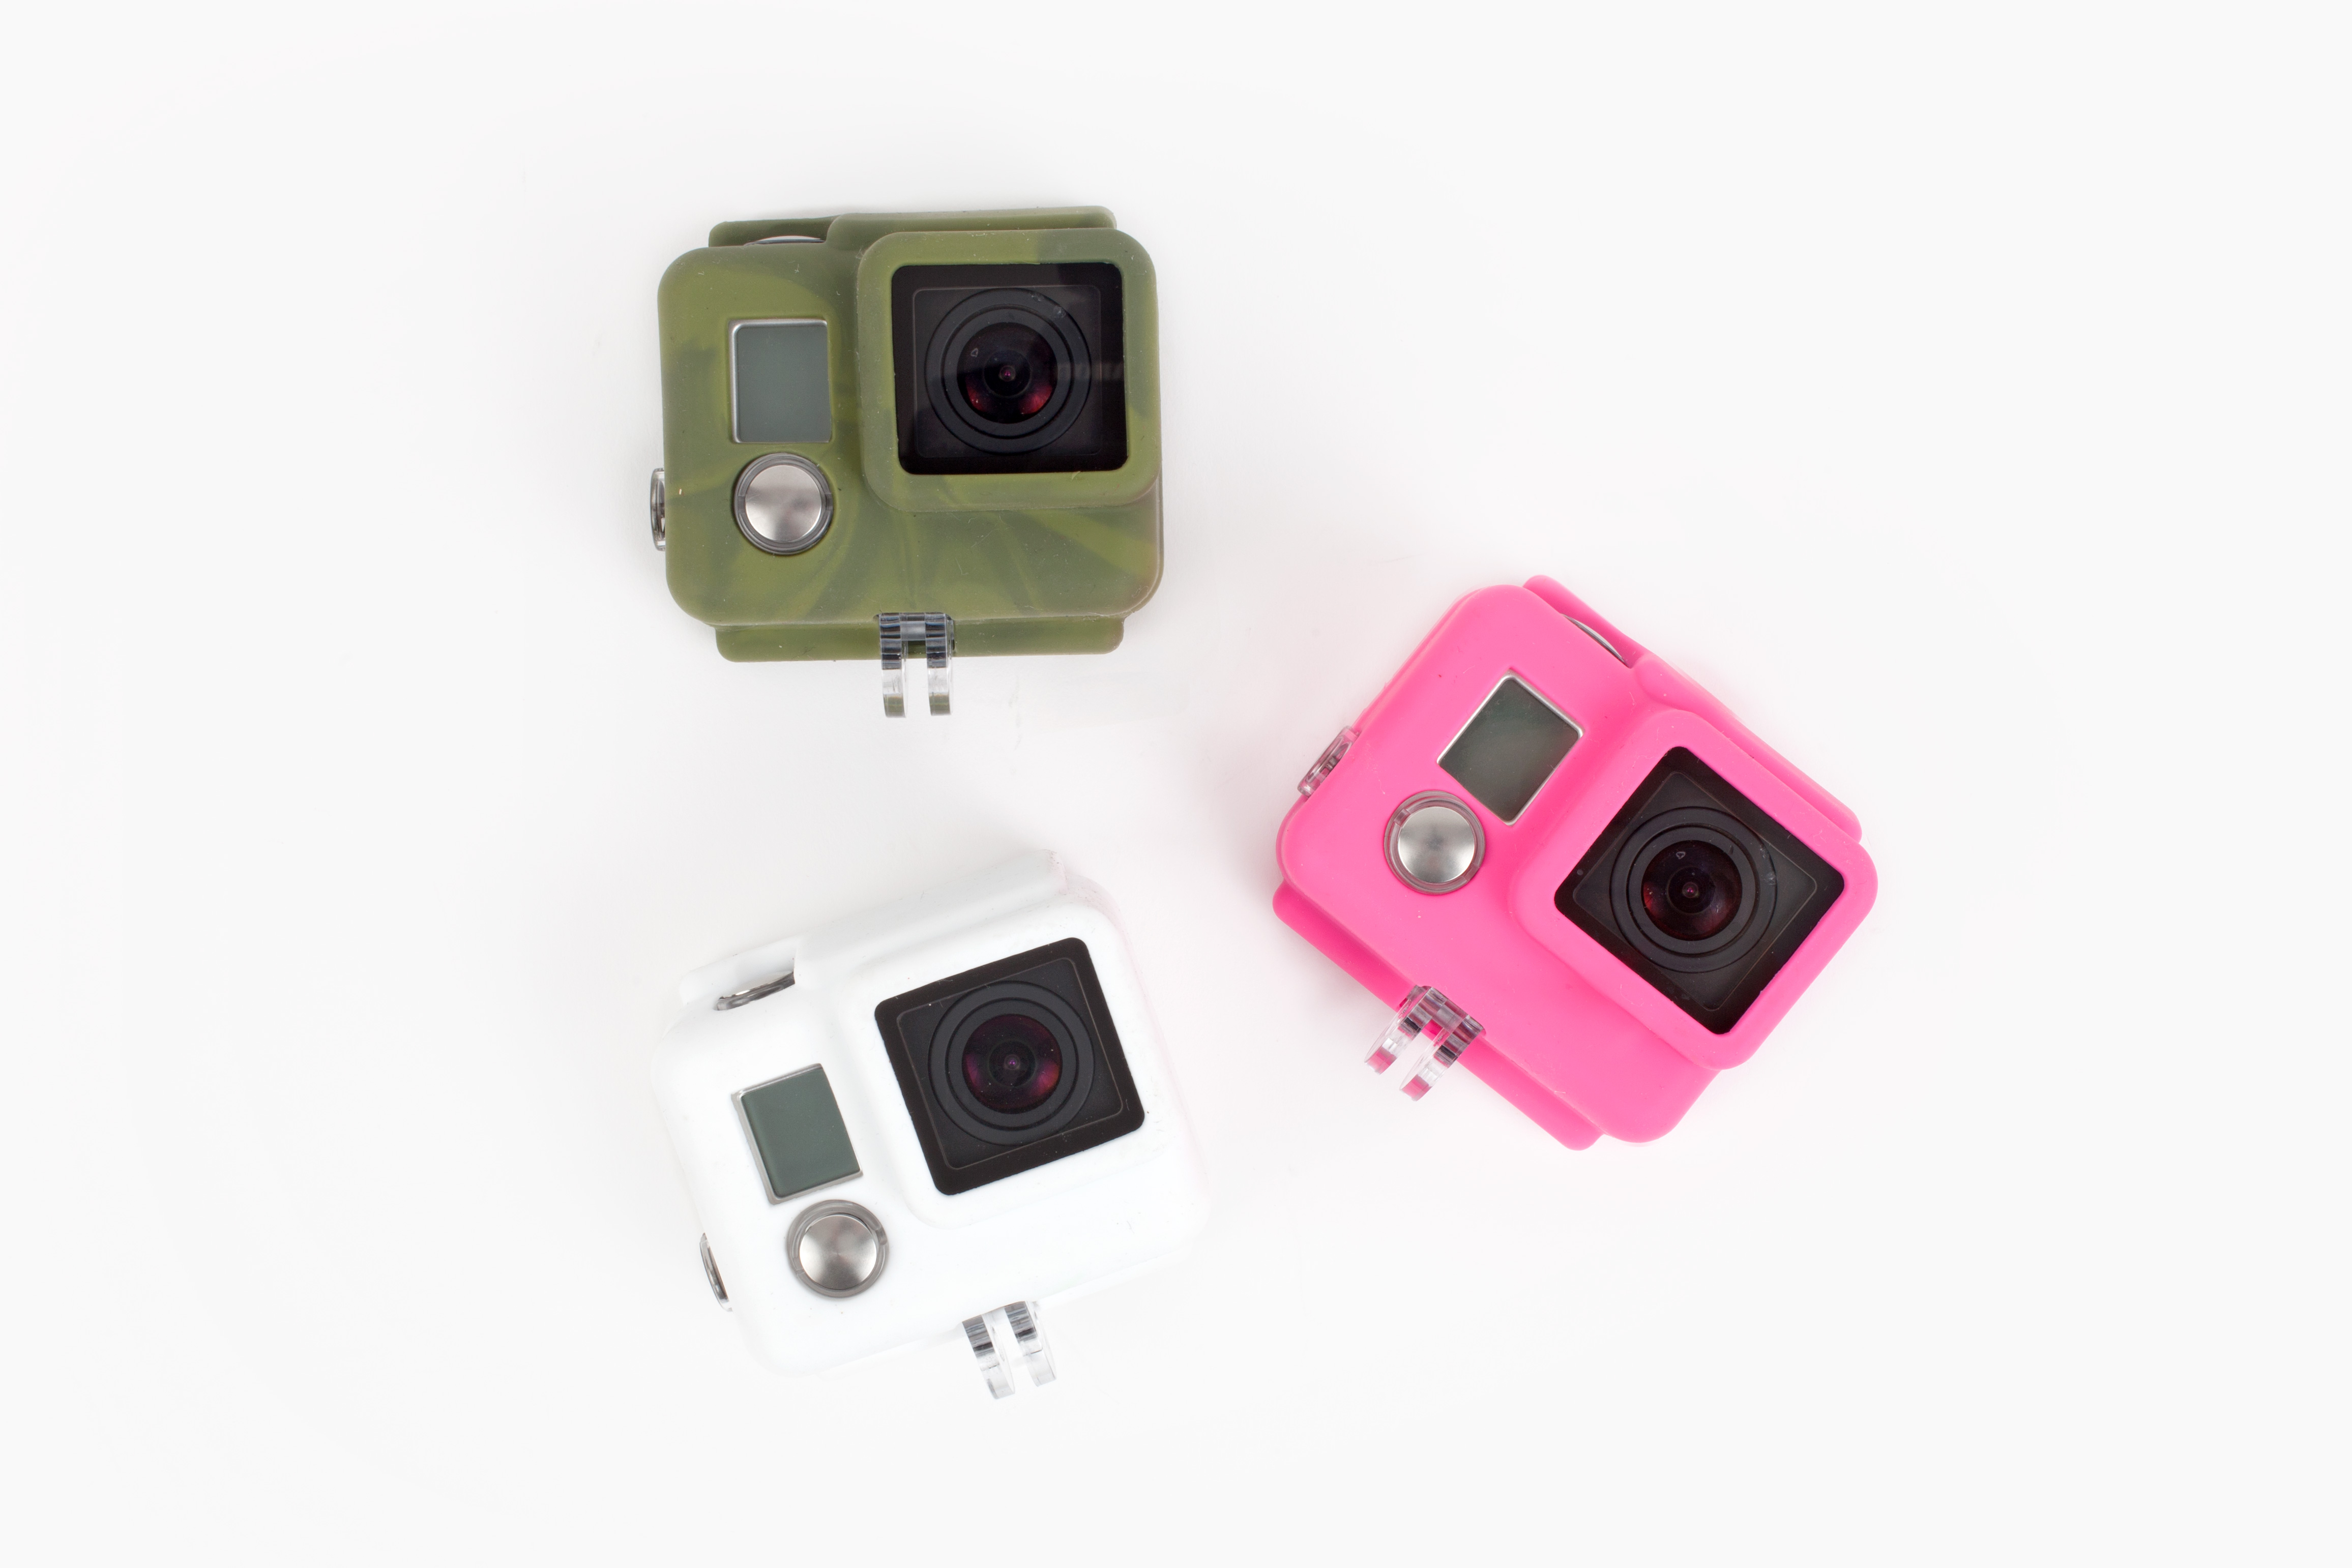 The new silicone GoPro camera cases: Like bubble wrap for your camera.